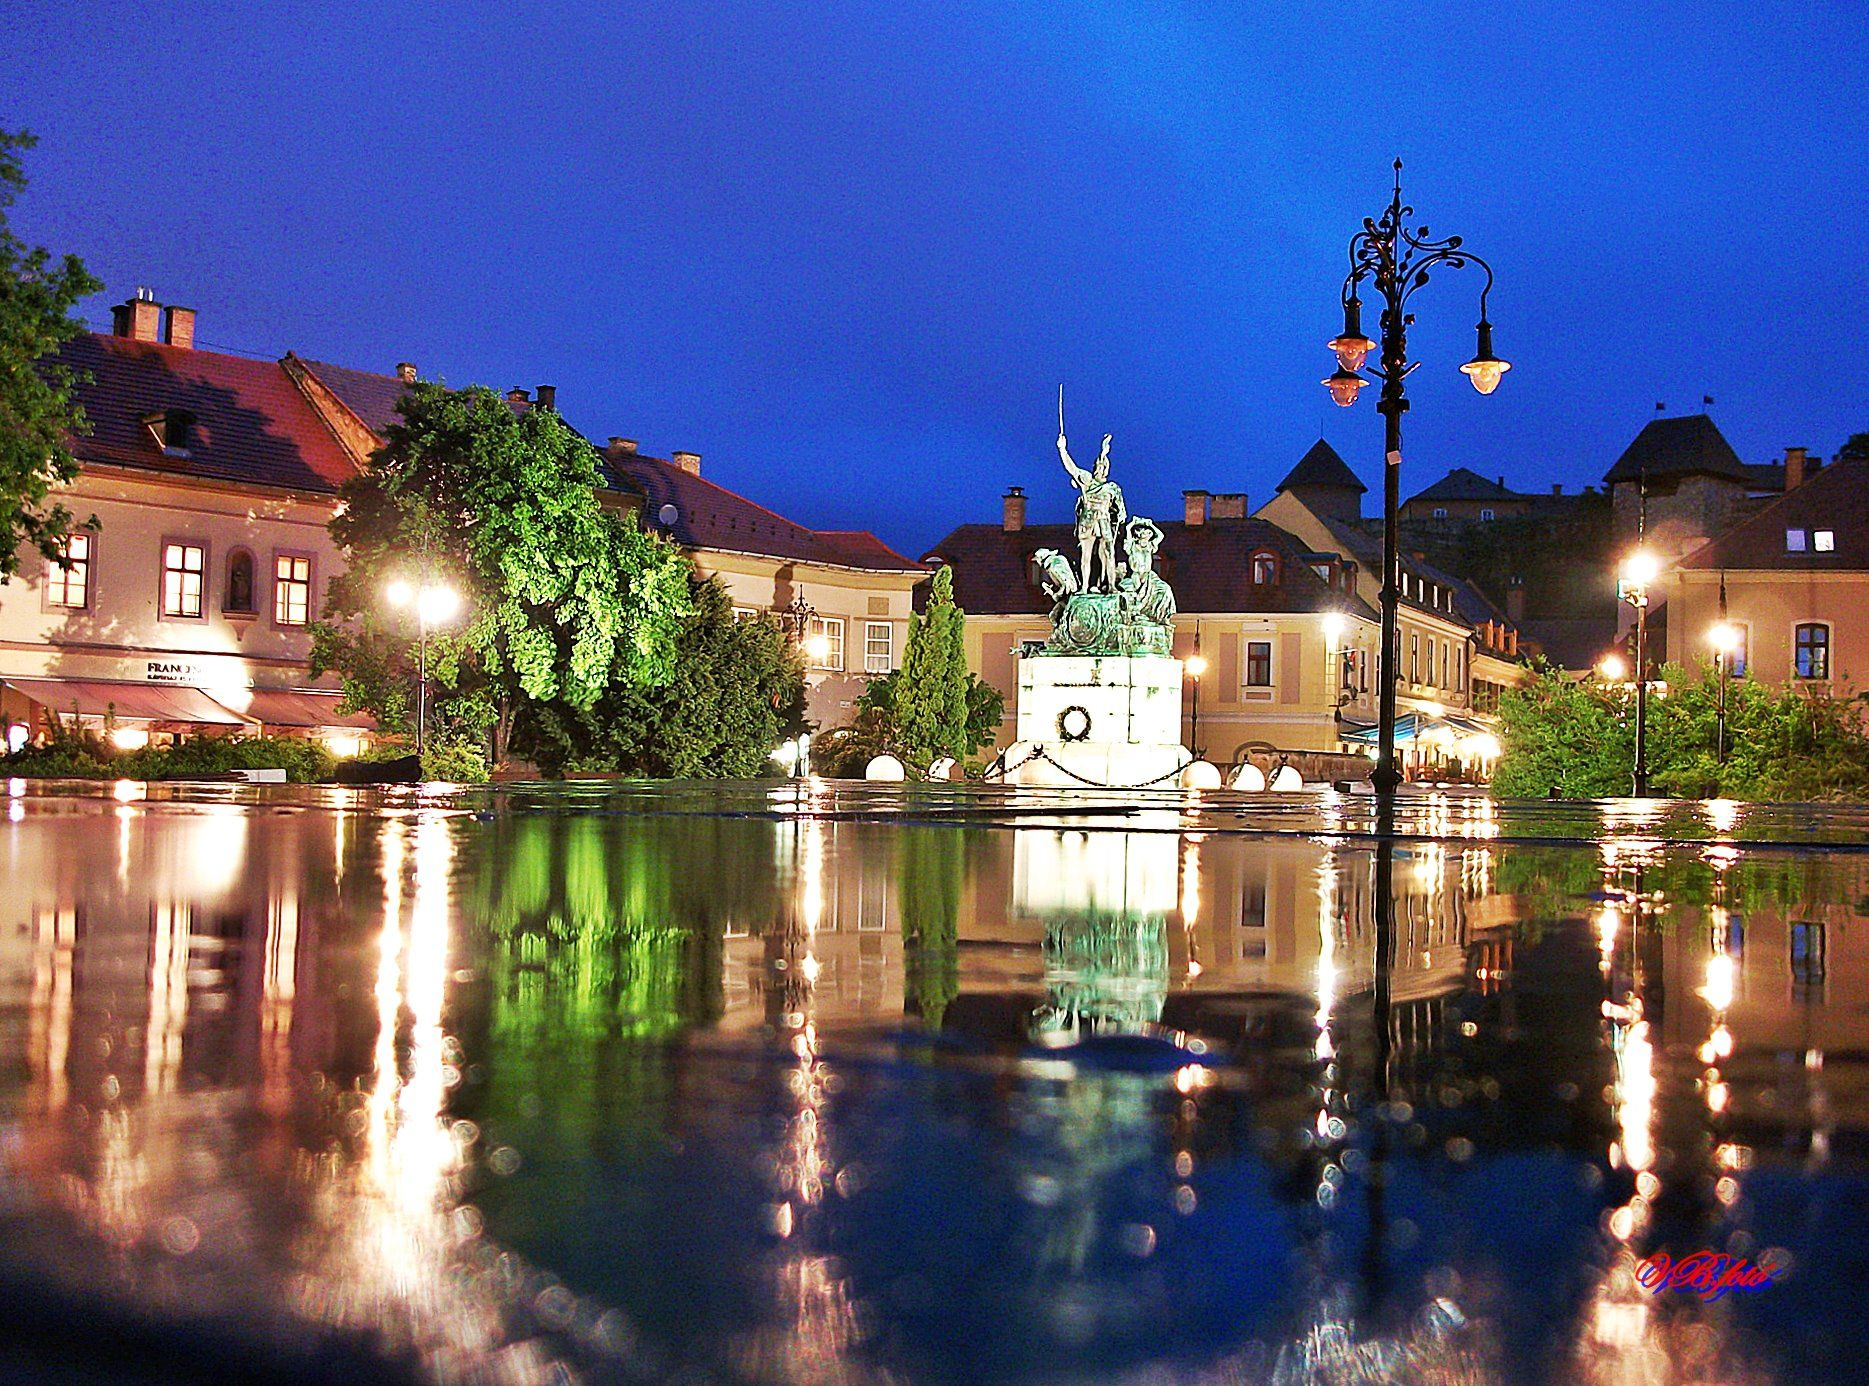 Eger Hungary  City pictures : Eger @Hungary | Pictures | Pinterest